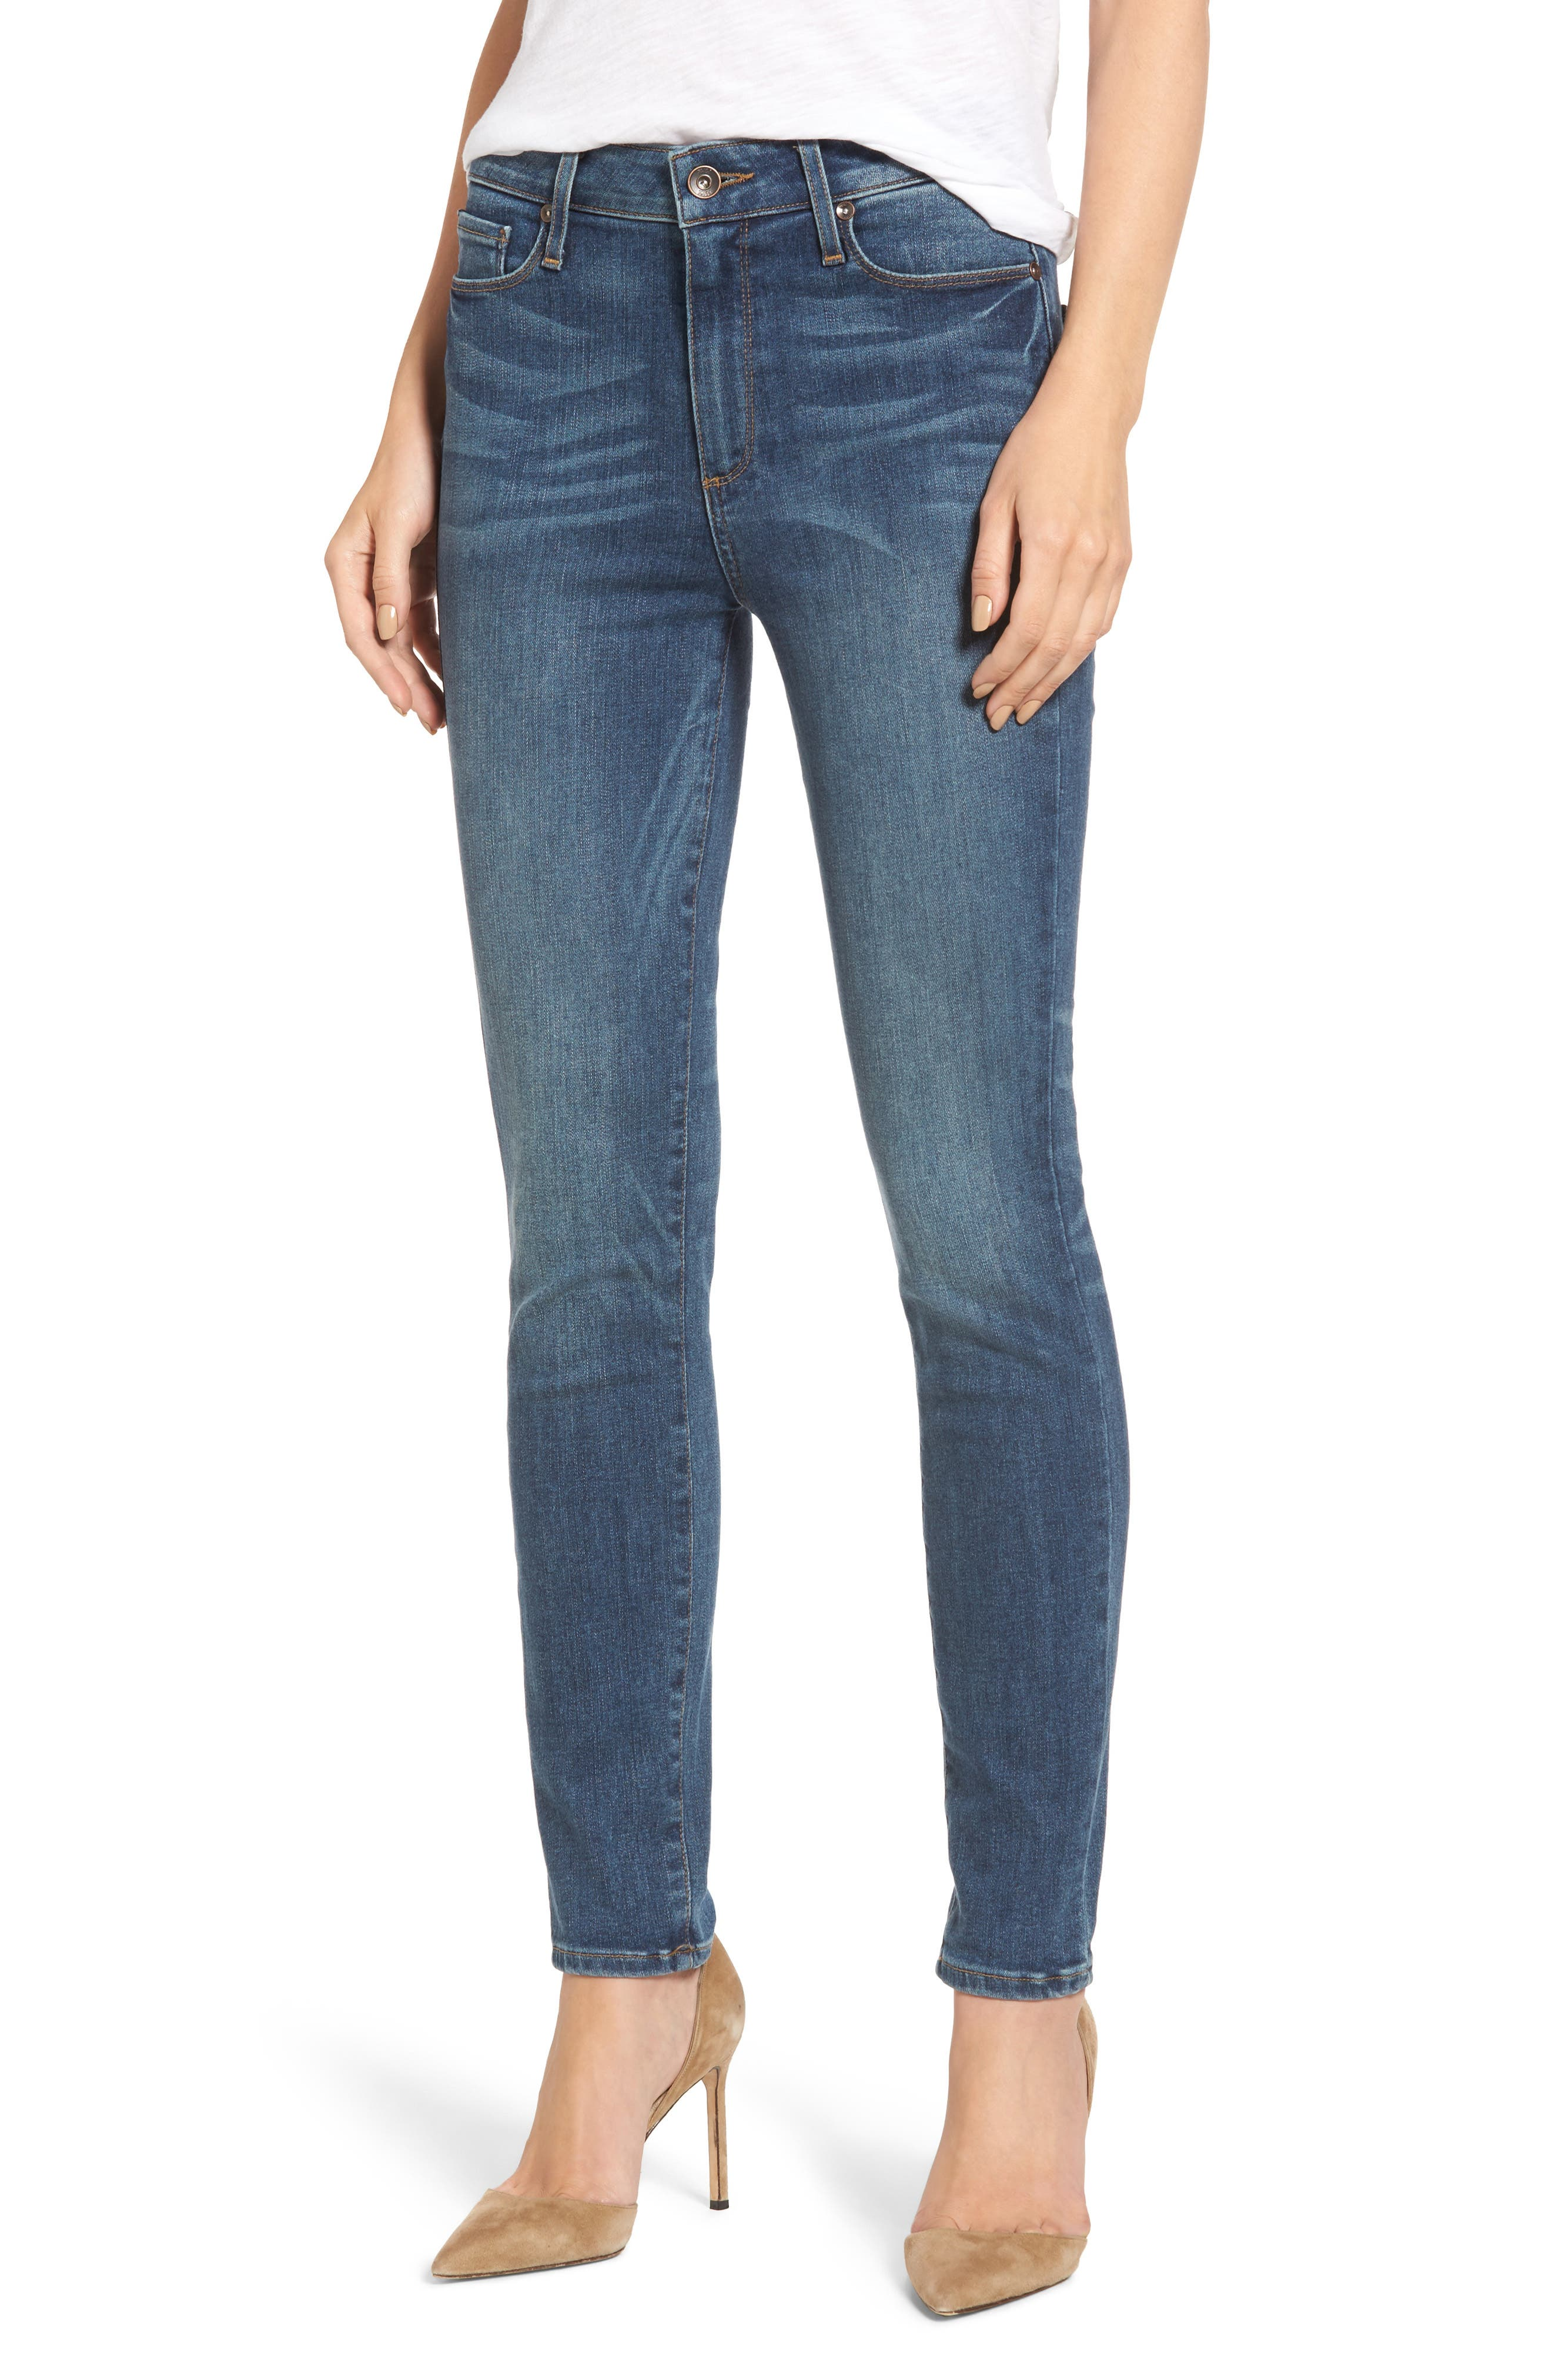 PAIGE Transcend - Hoxton High Waist Skinny Jeans (Westminster)